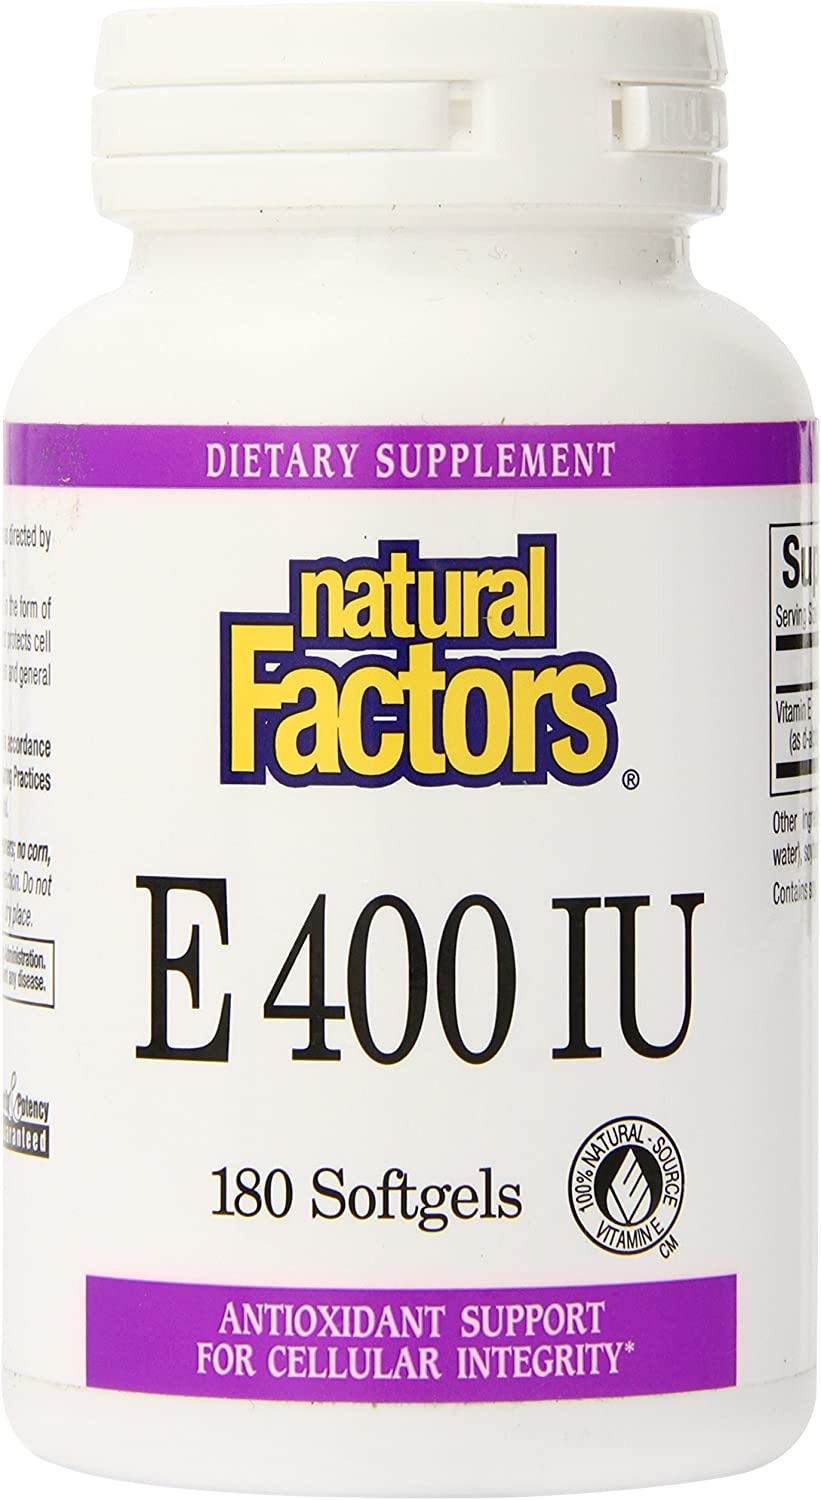 Natural Factors Vitamin E d-alpha Tocopheryl Acetate 400iu Softgels, 180-Count